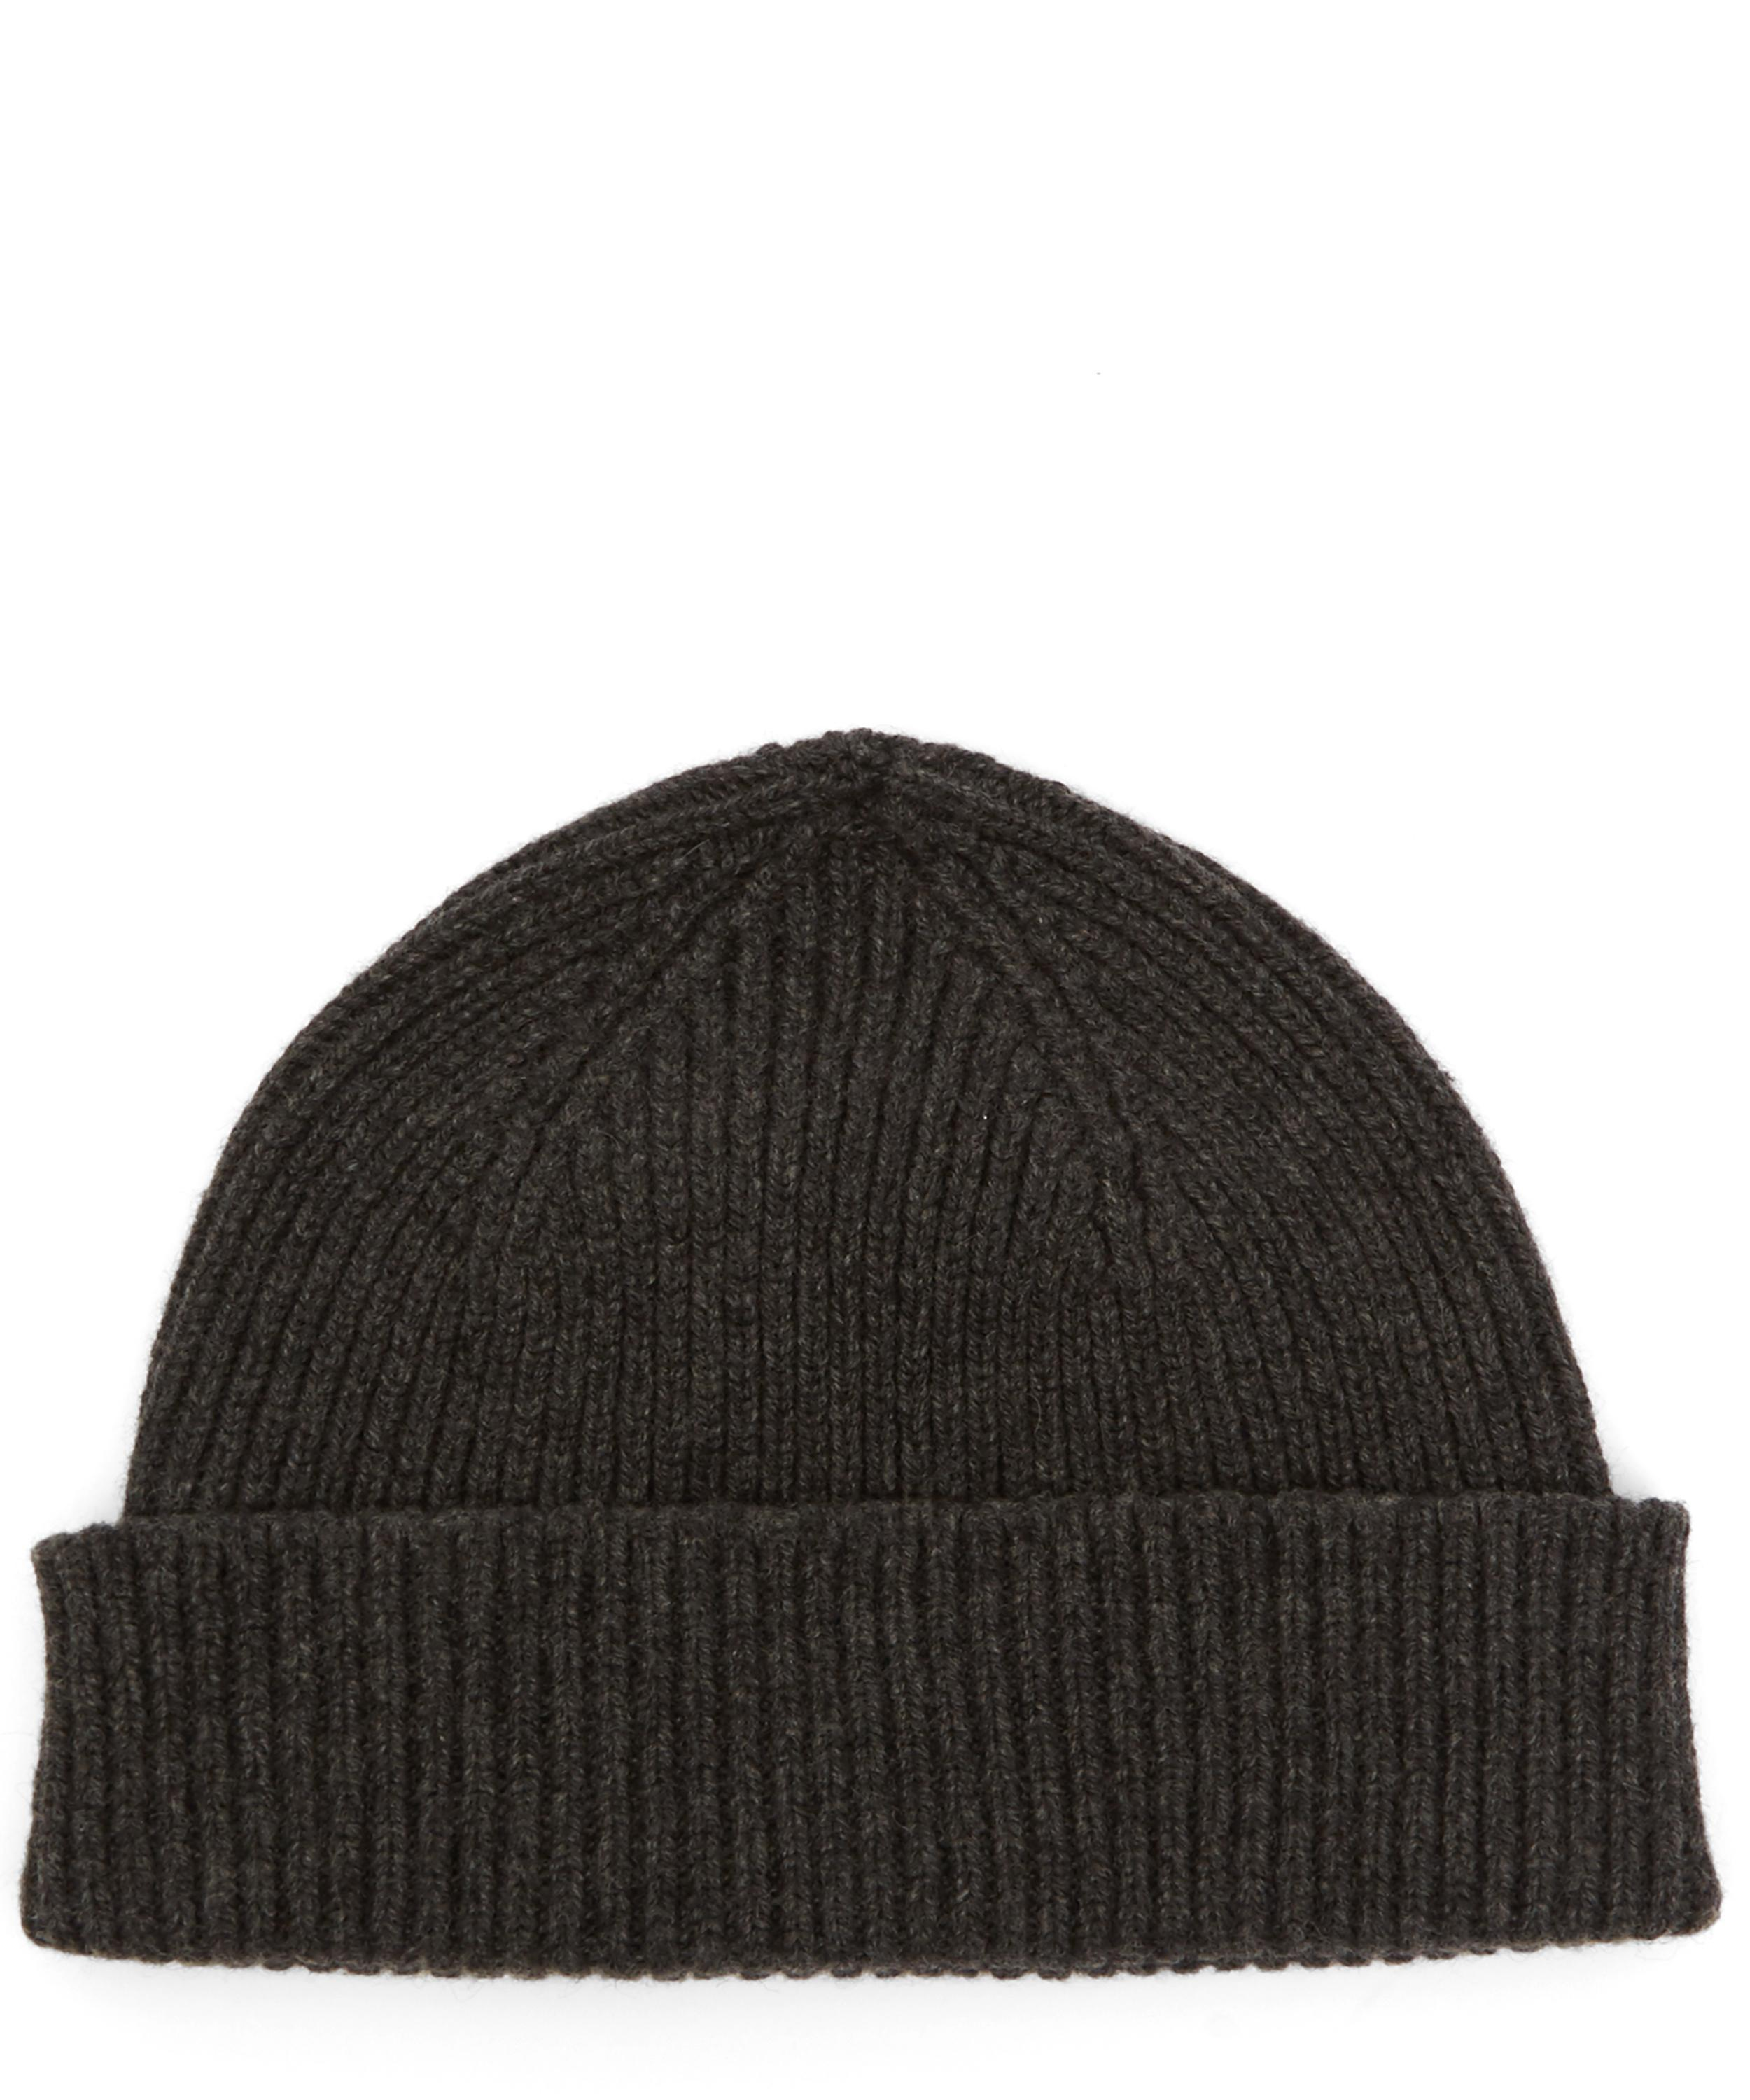 Lyst - Paul Smith Ribbed Cashmere Beanie in Gray for Men db7a08628344